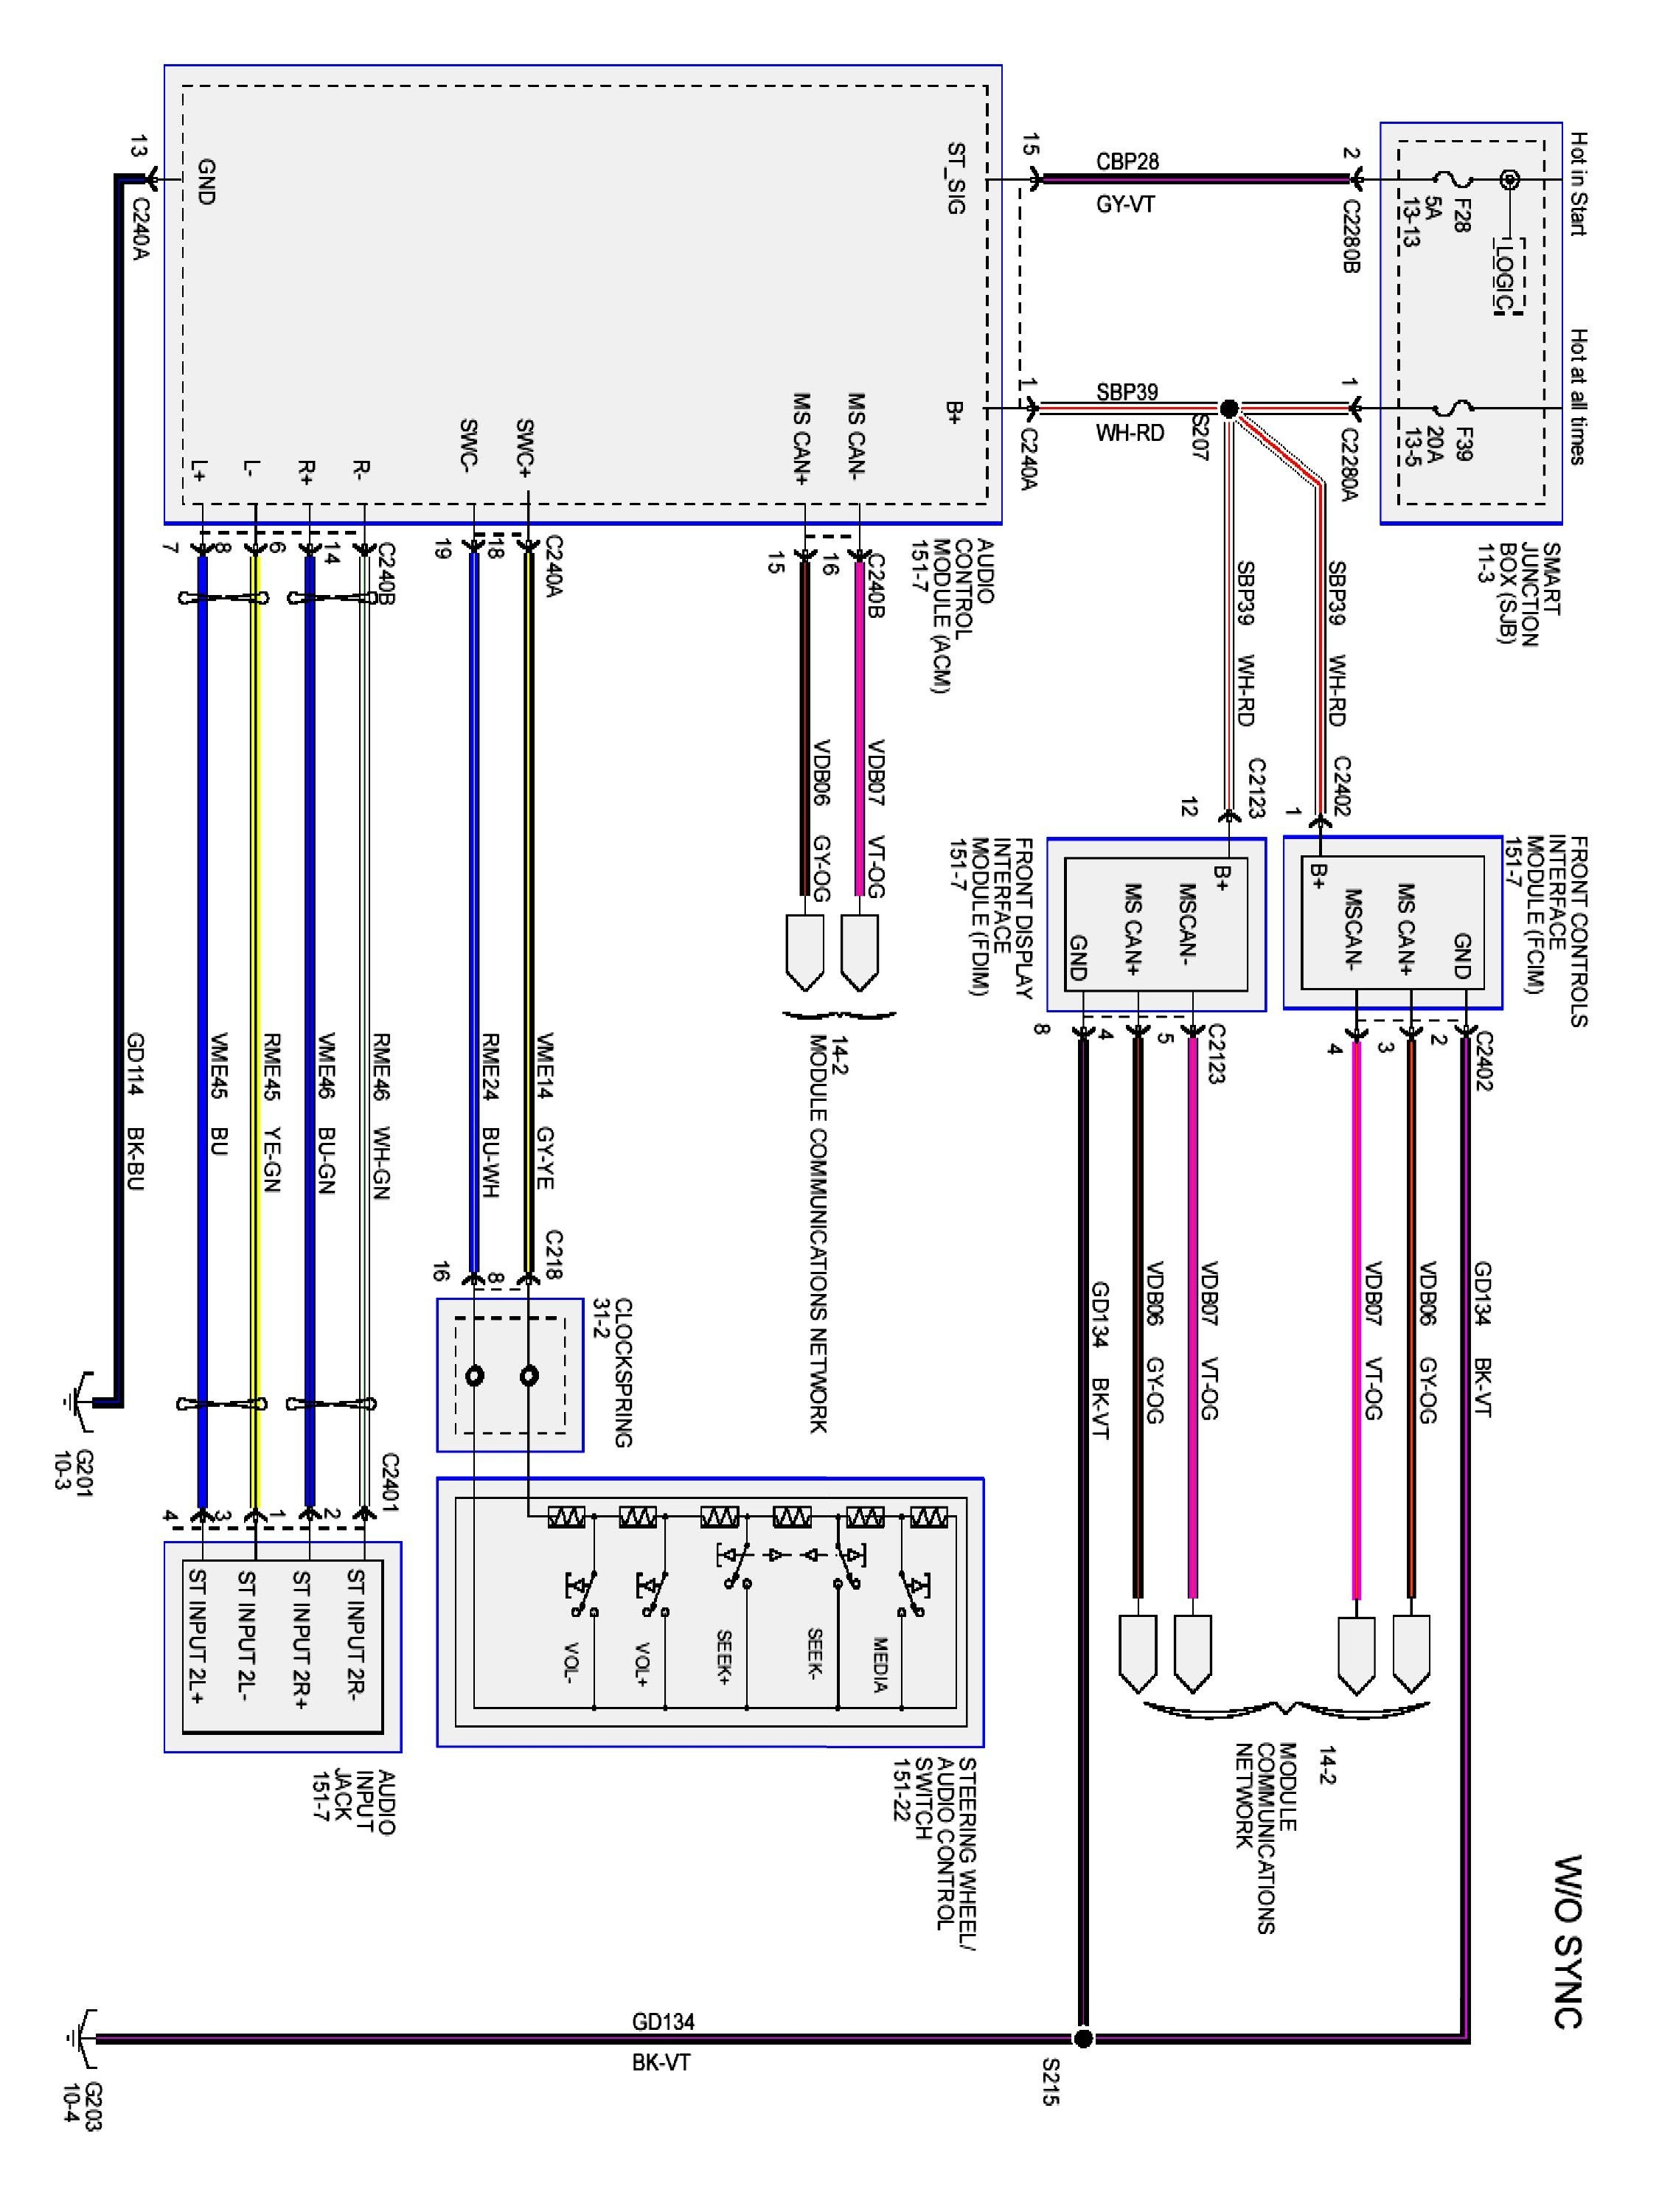 2003 ford Focus Engine Diagram ford Fiesta 06 Wiring Diagram Another Blog About Wiring Diagram • Of 2003 ford Focus Engine Diagram